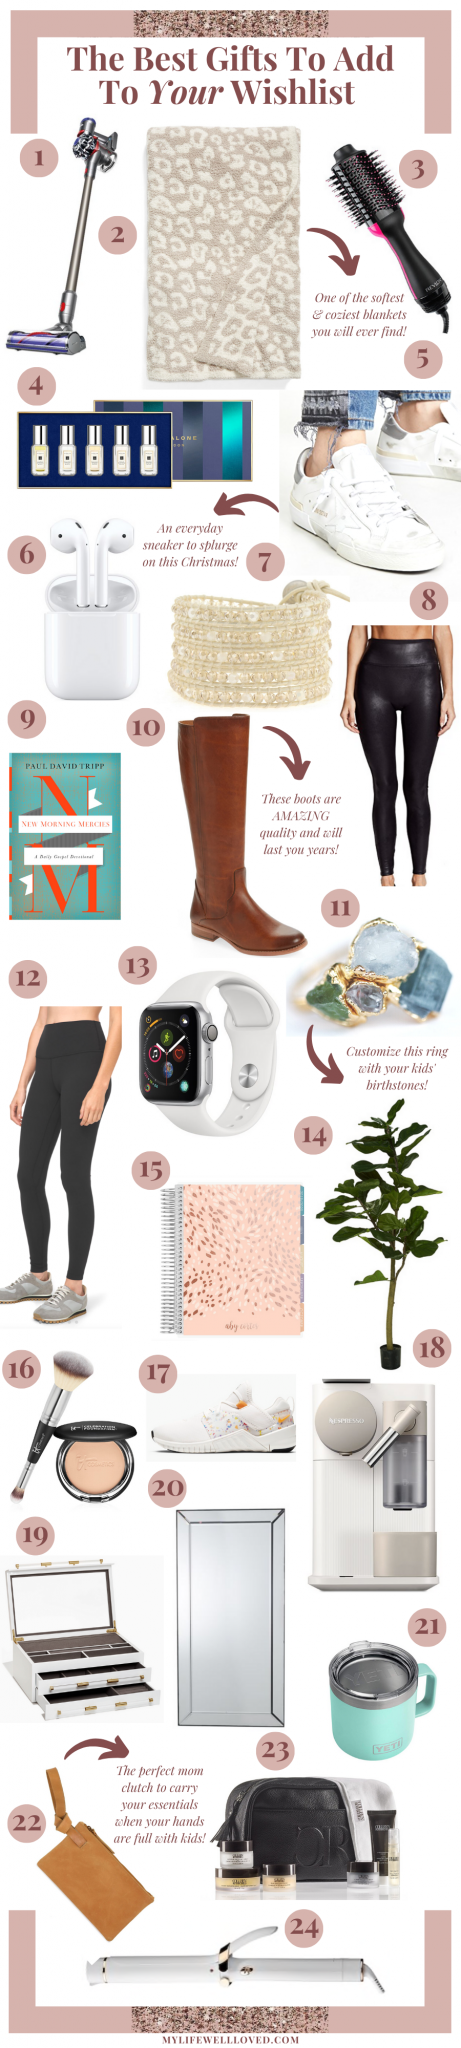 Holiday Gift Ideas For Women & YOUR Wishlist   My Life Well Loved